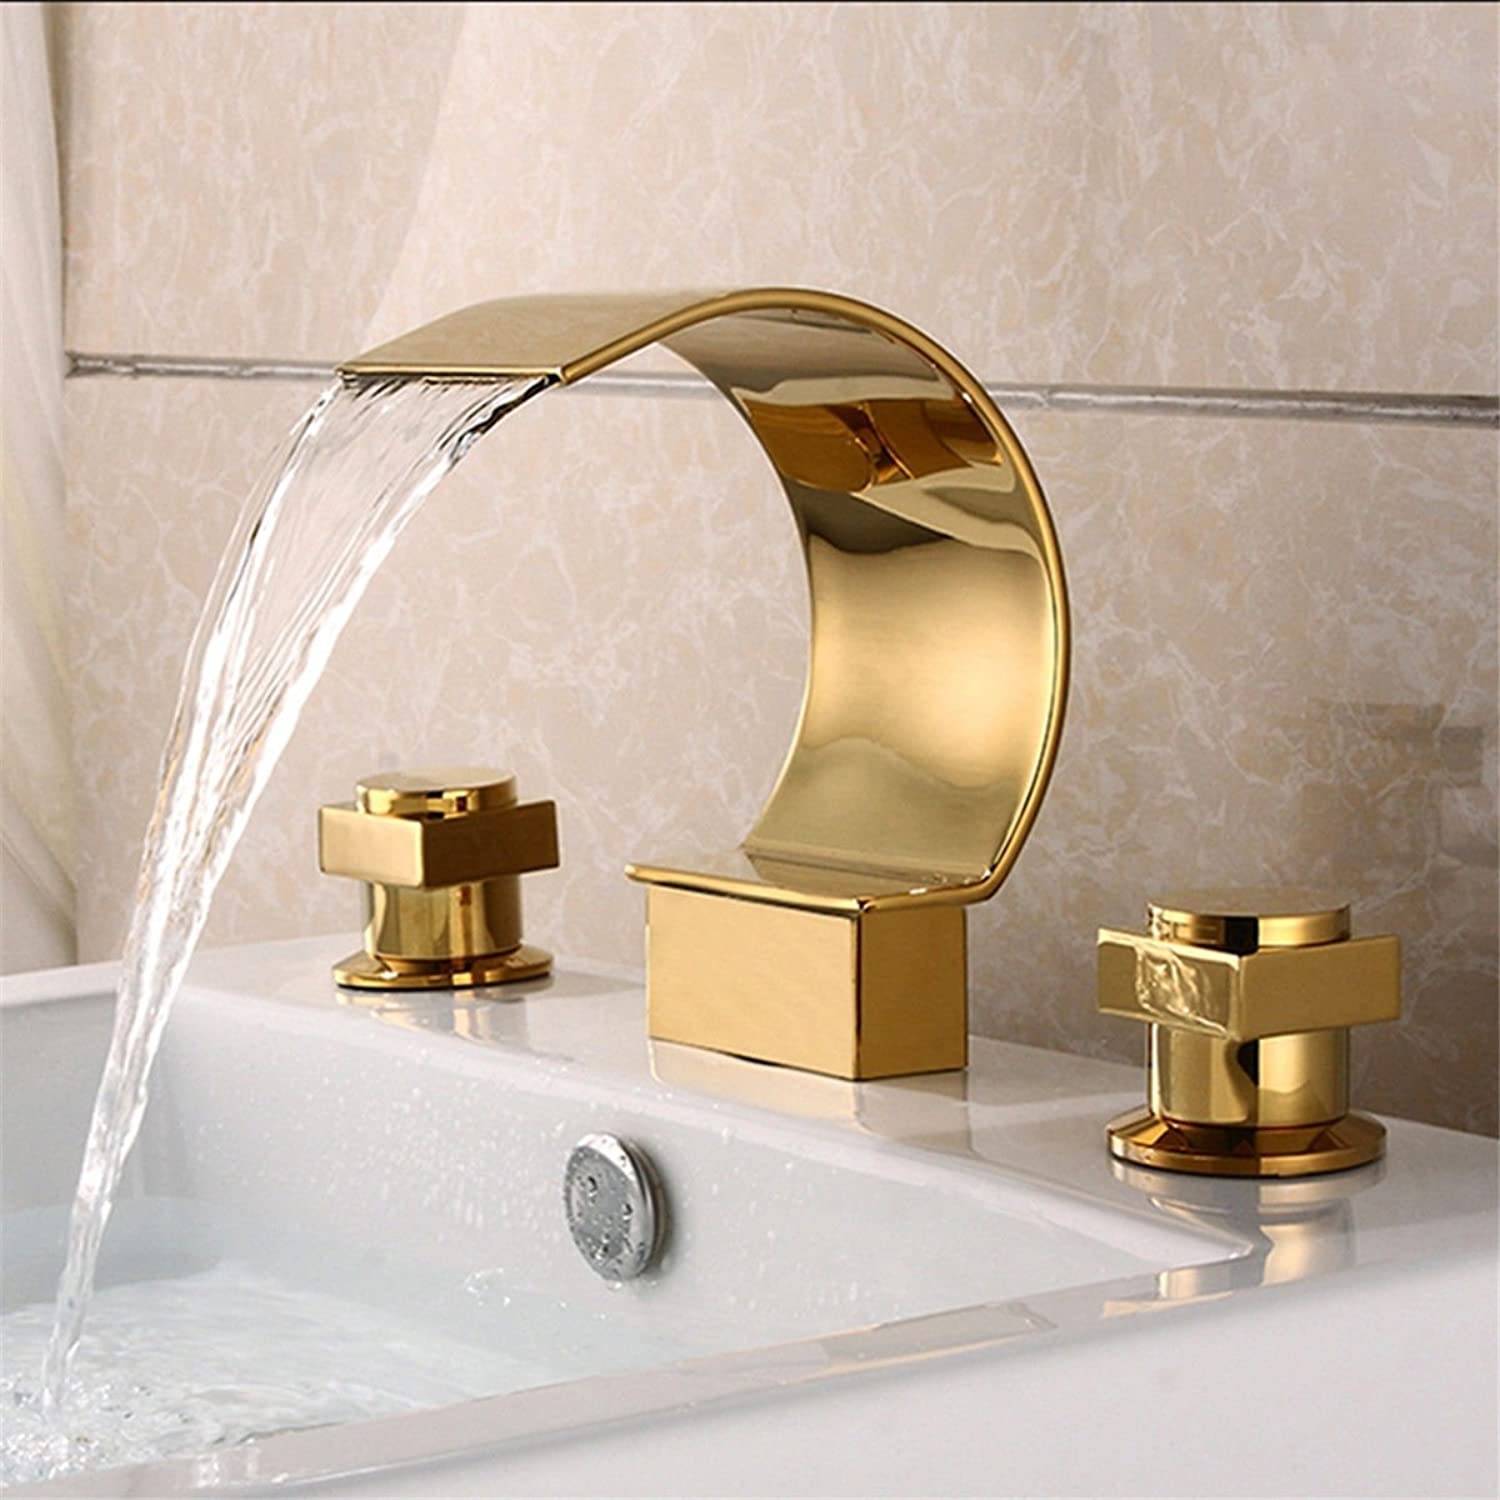 Hlluya Professional Sink Mixer Tap Kitchen Faucet gold Plated Double Handle three hole waterfall ceramic valve hot and cold mixing valve basin mixer   bathroom sink basin mixer